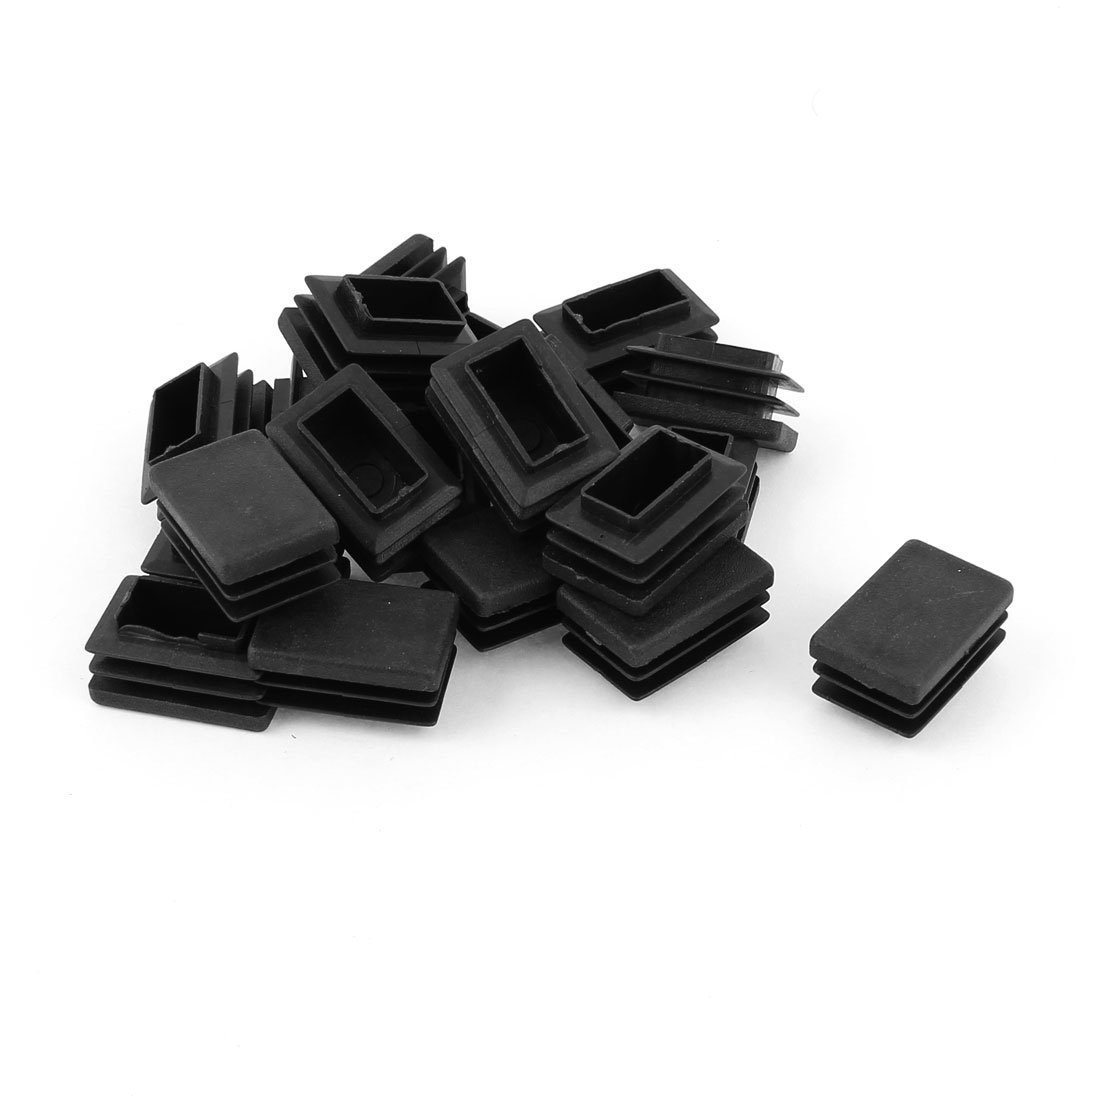 20 pcs Plastic Rectangular End Cap 30mm x 20mm Threaded Pipe Tube Insert Rubber feet 80mm x 30mm aluminium flat rectangular bar 80 30mm width 80mm thickness 30mm 6061 t6